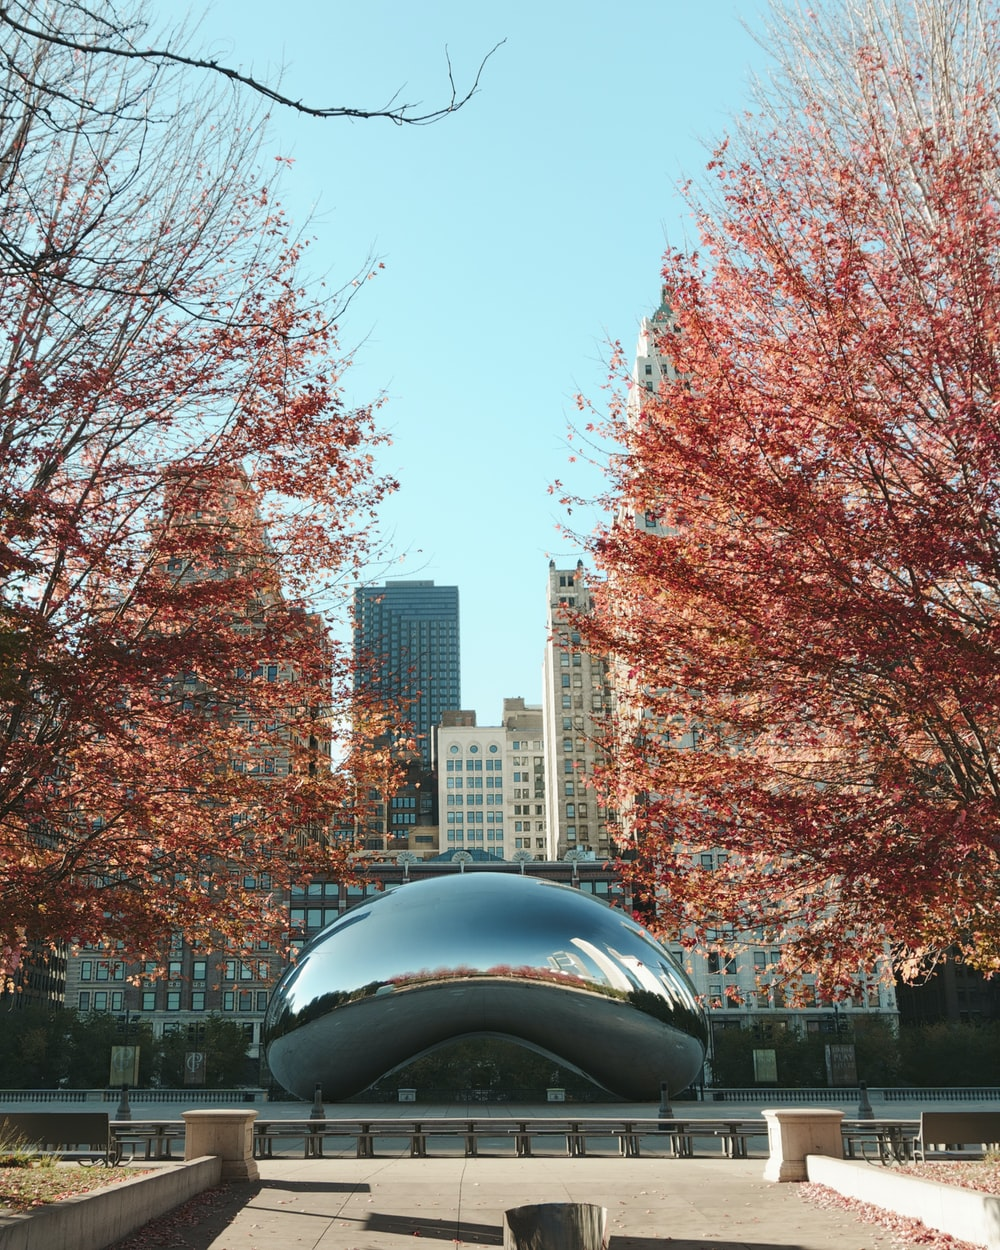 Cloud Gate, Chicago at daytime